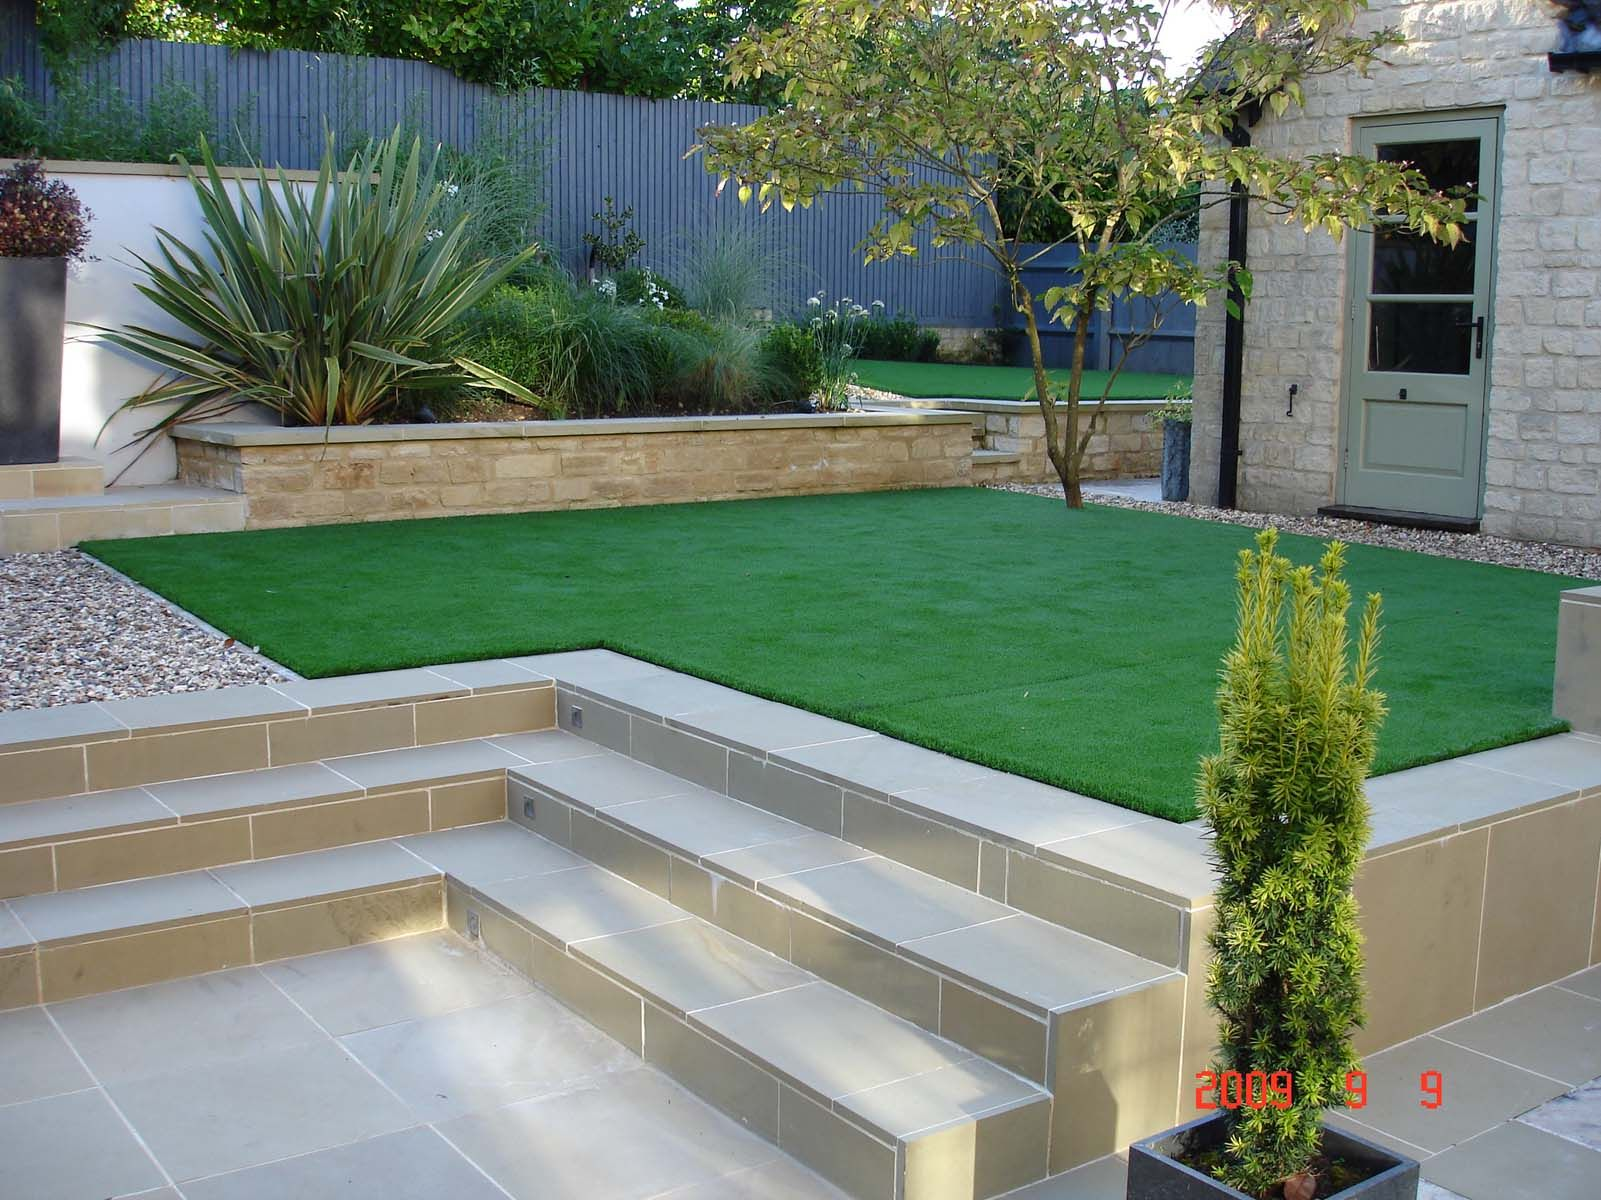 Low maintenance with artificial grass astro turf garden for Lawn and garden landscaping ideas